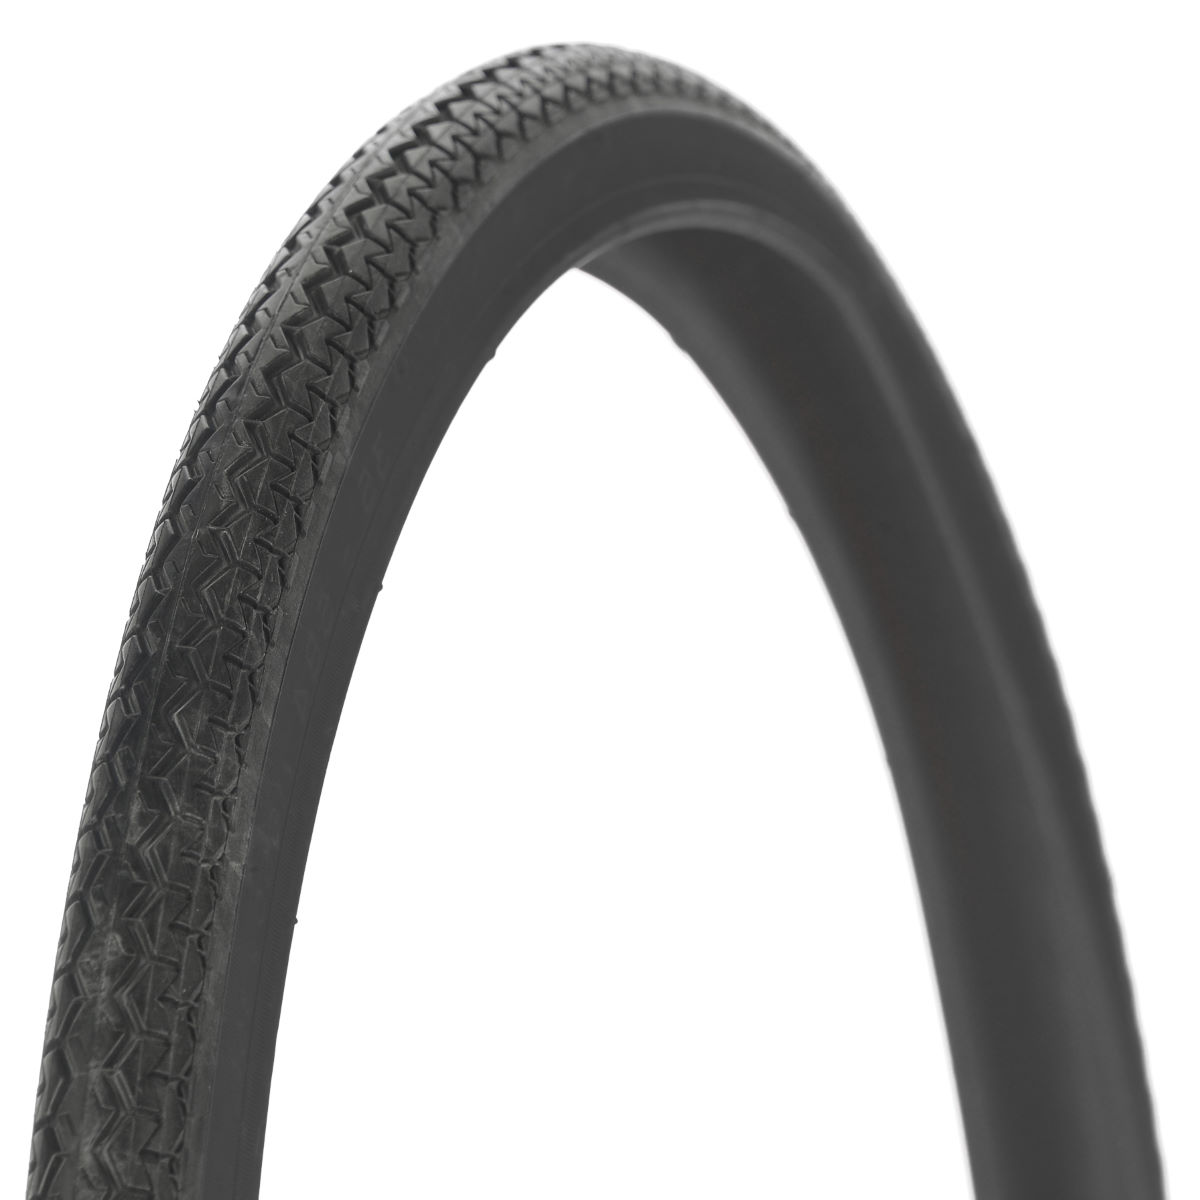 Image of Pneu Michelin World Tour Bike - 700c 35c Wire Bead Noir | Pneus